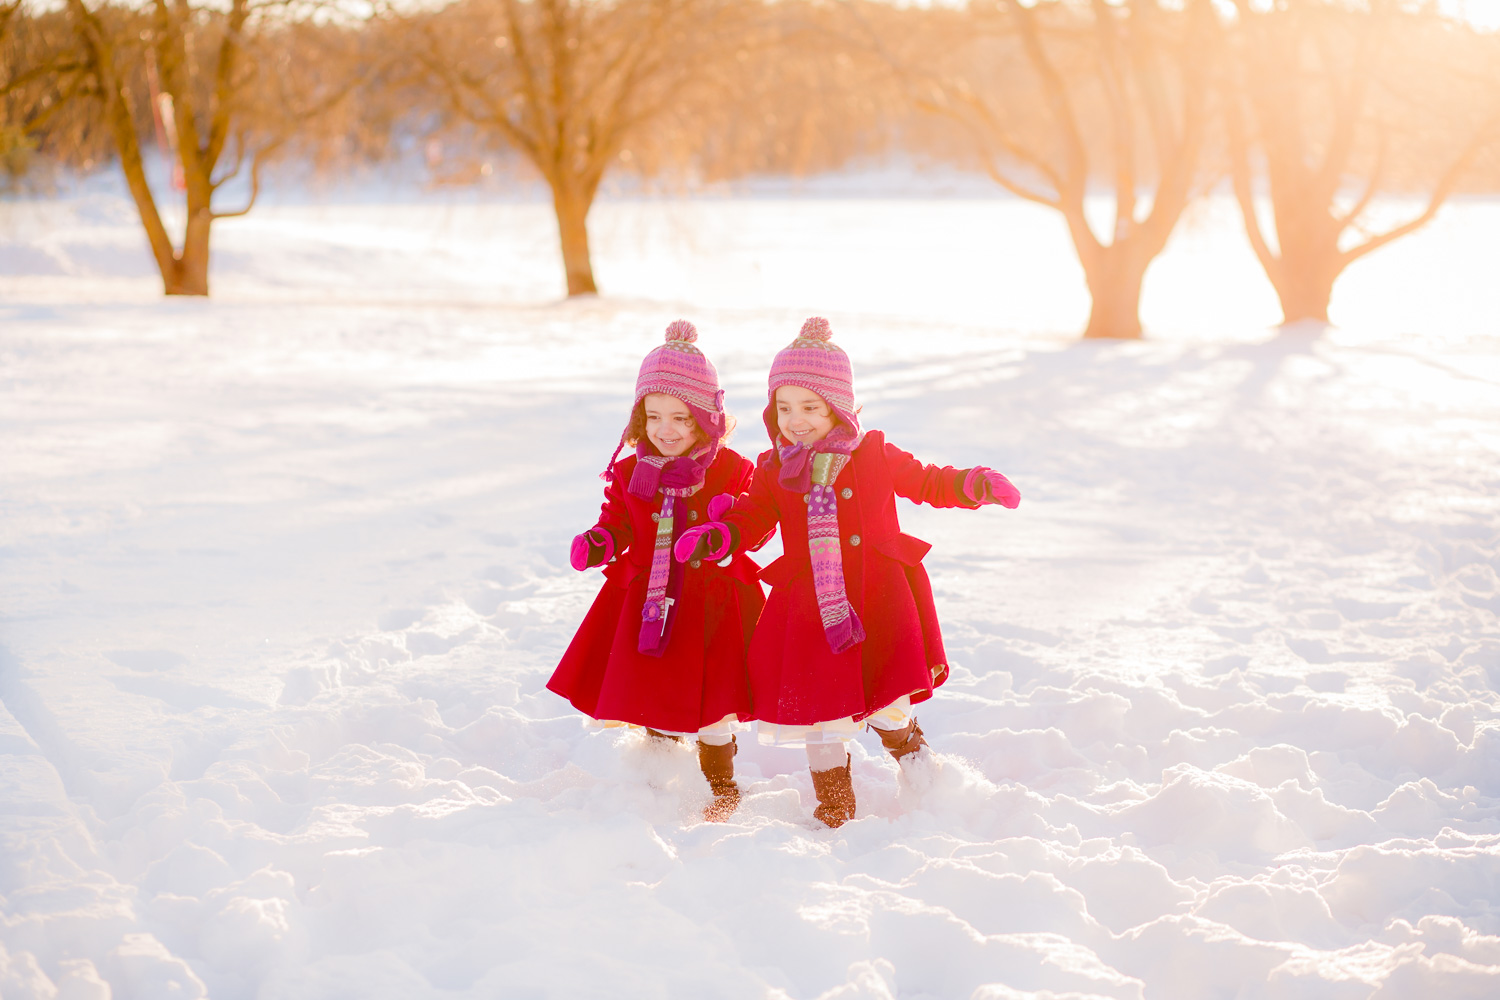 children-running-in-snow-by-stockholm-barnfotograf-sandra-jolly.jpg